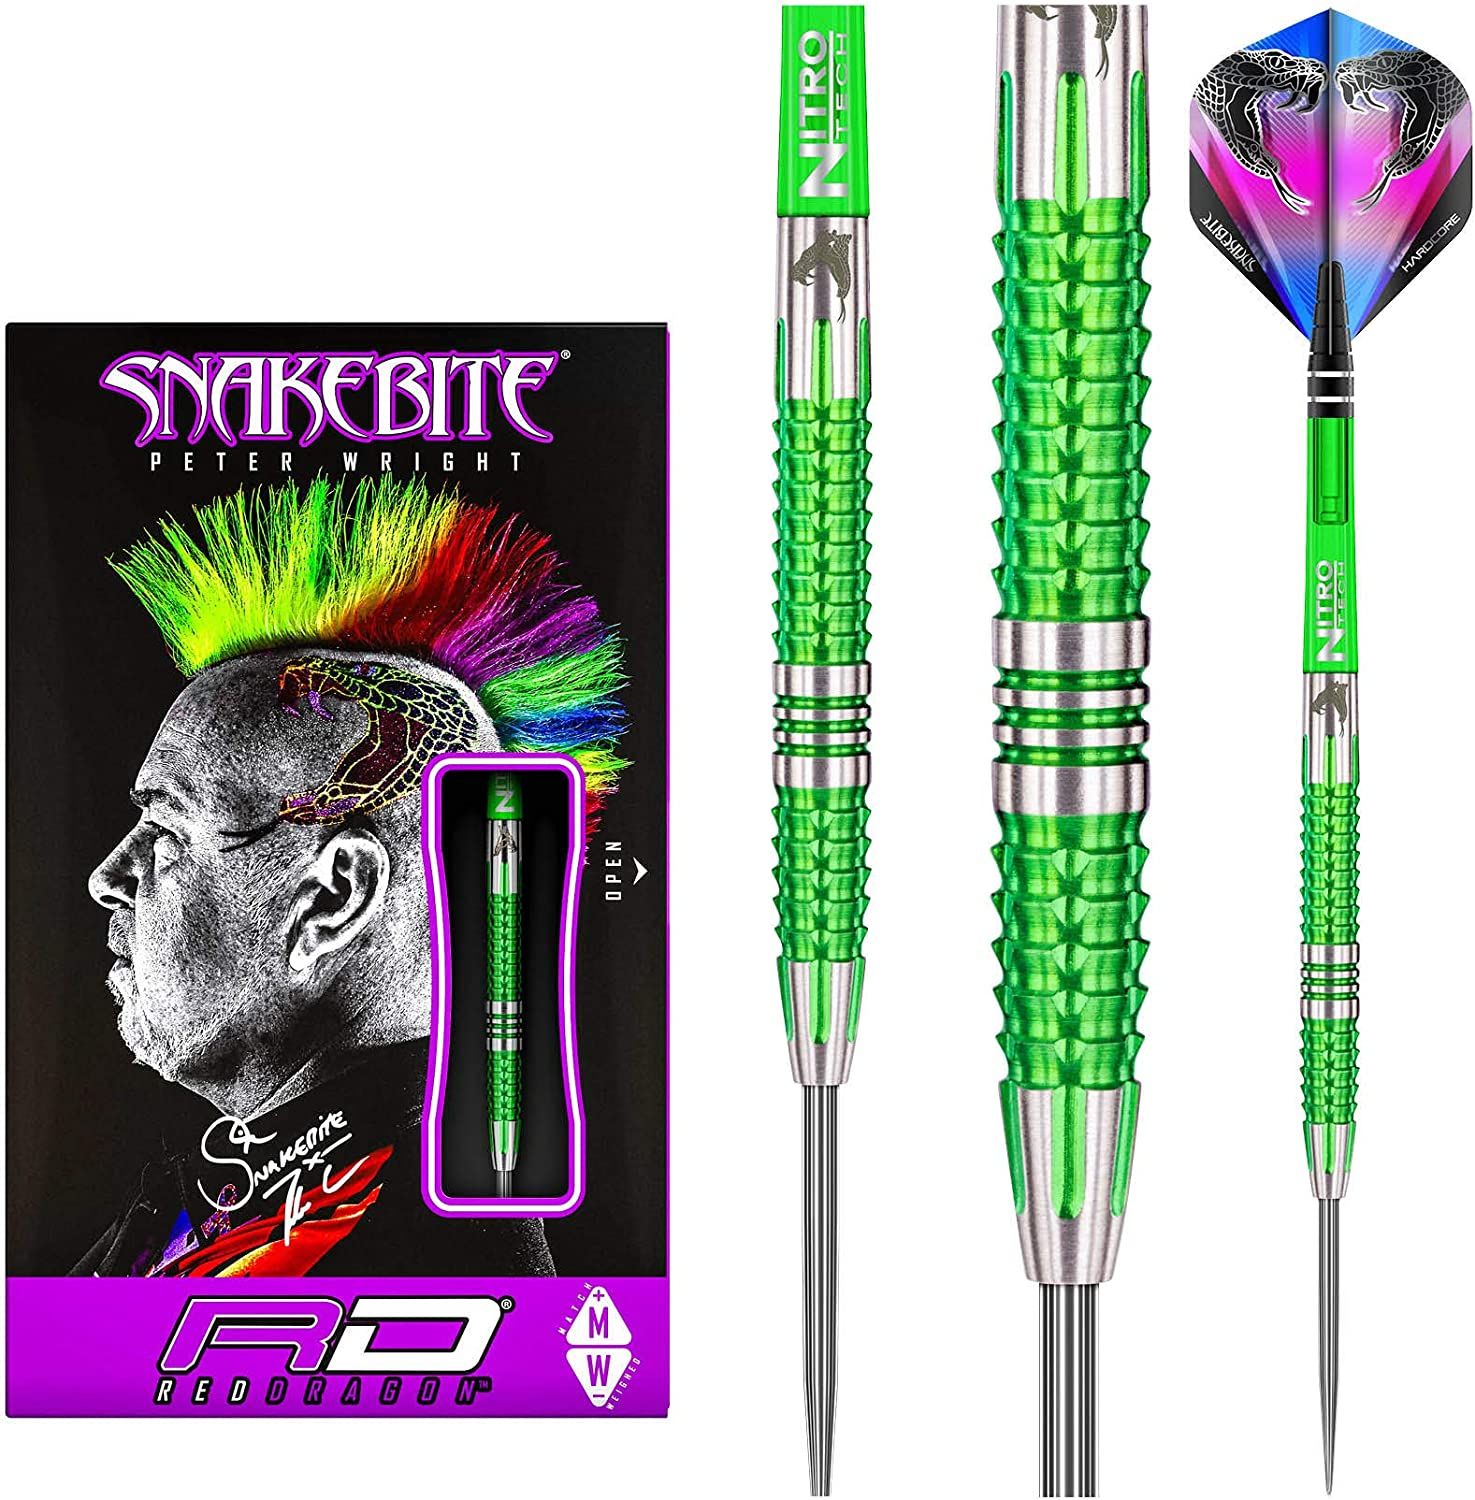 Red Dragon Peter Wright Snakebite Mamba Free Shipping Cheap Bargain Gift 2: or Online limited product 24g 22g Tungsten D